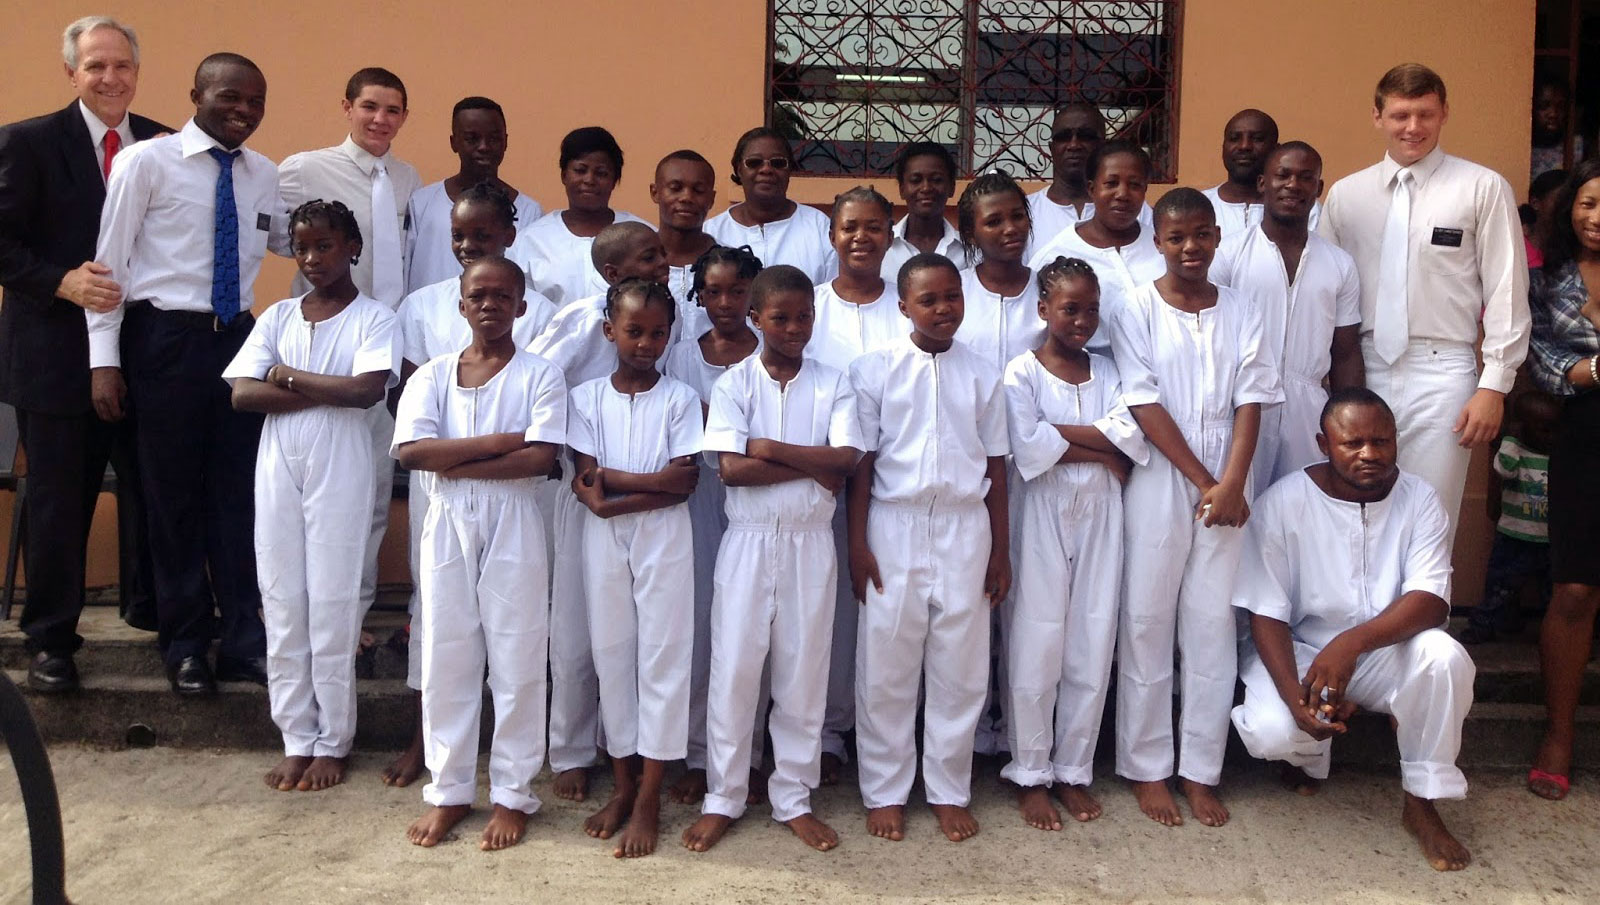 First Gabon Baptisms, photo by The Church of Jesus Christ of Latter-day Saints.